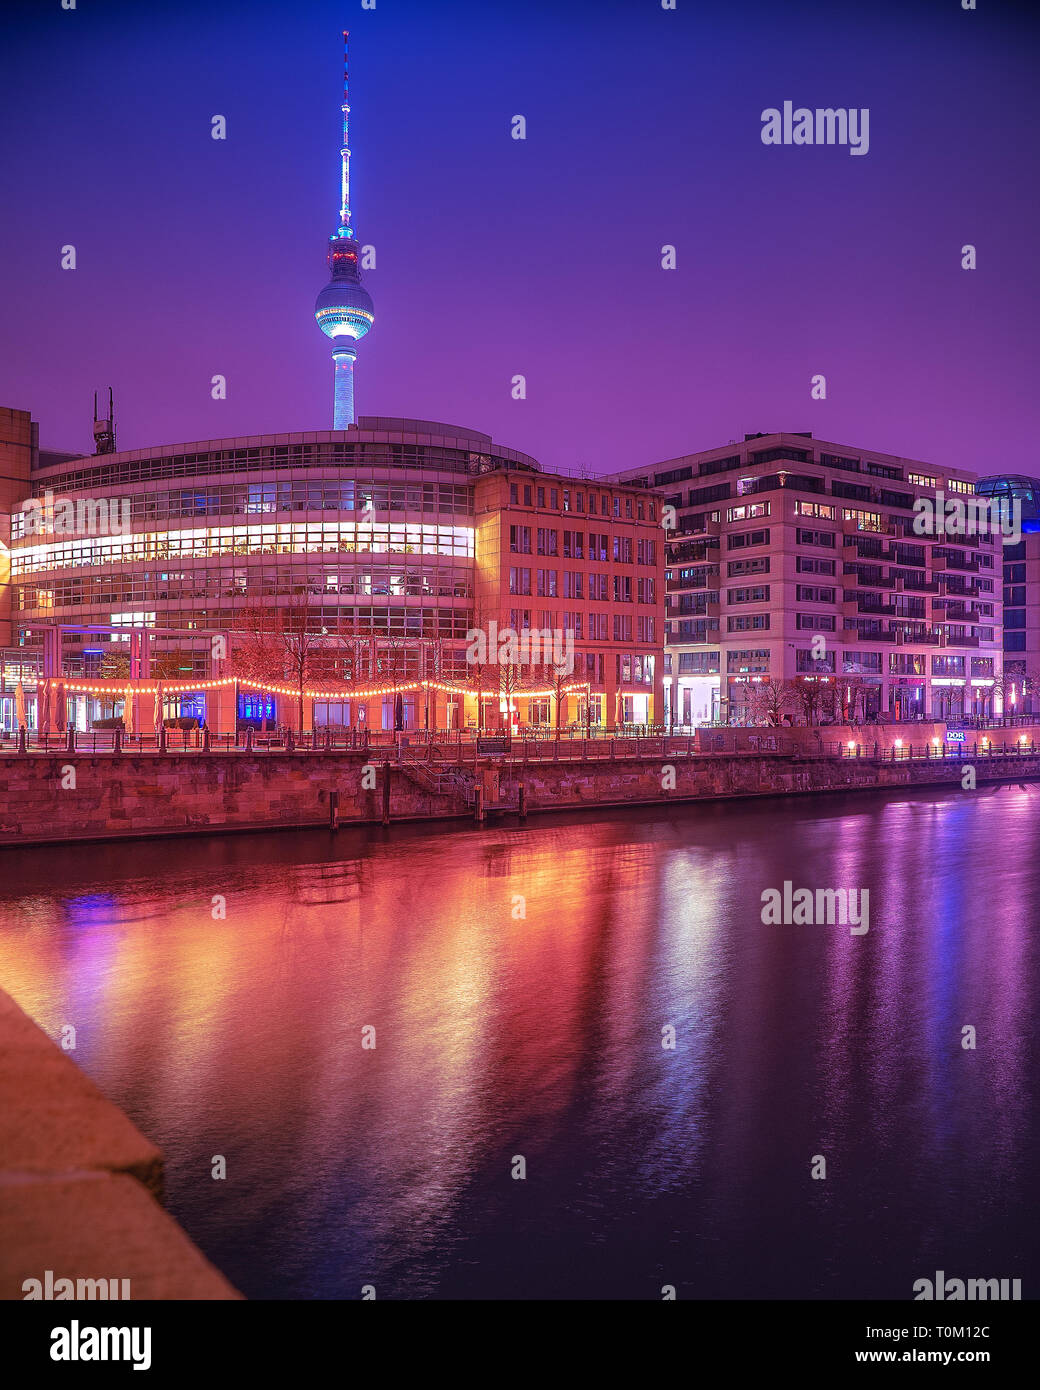 Berlin City at Night with beautiful neon lights in a futuristic different look Stock Photo